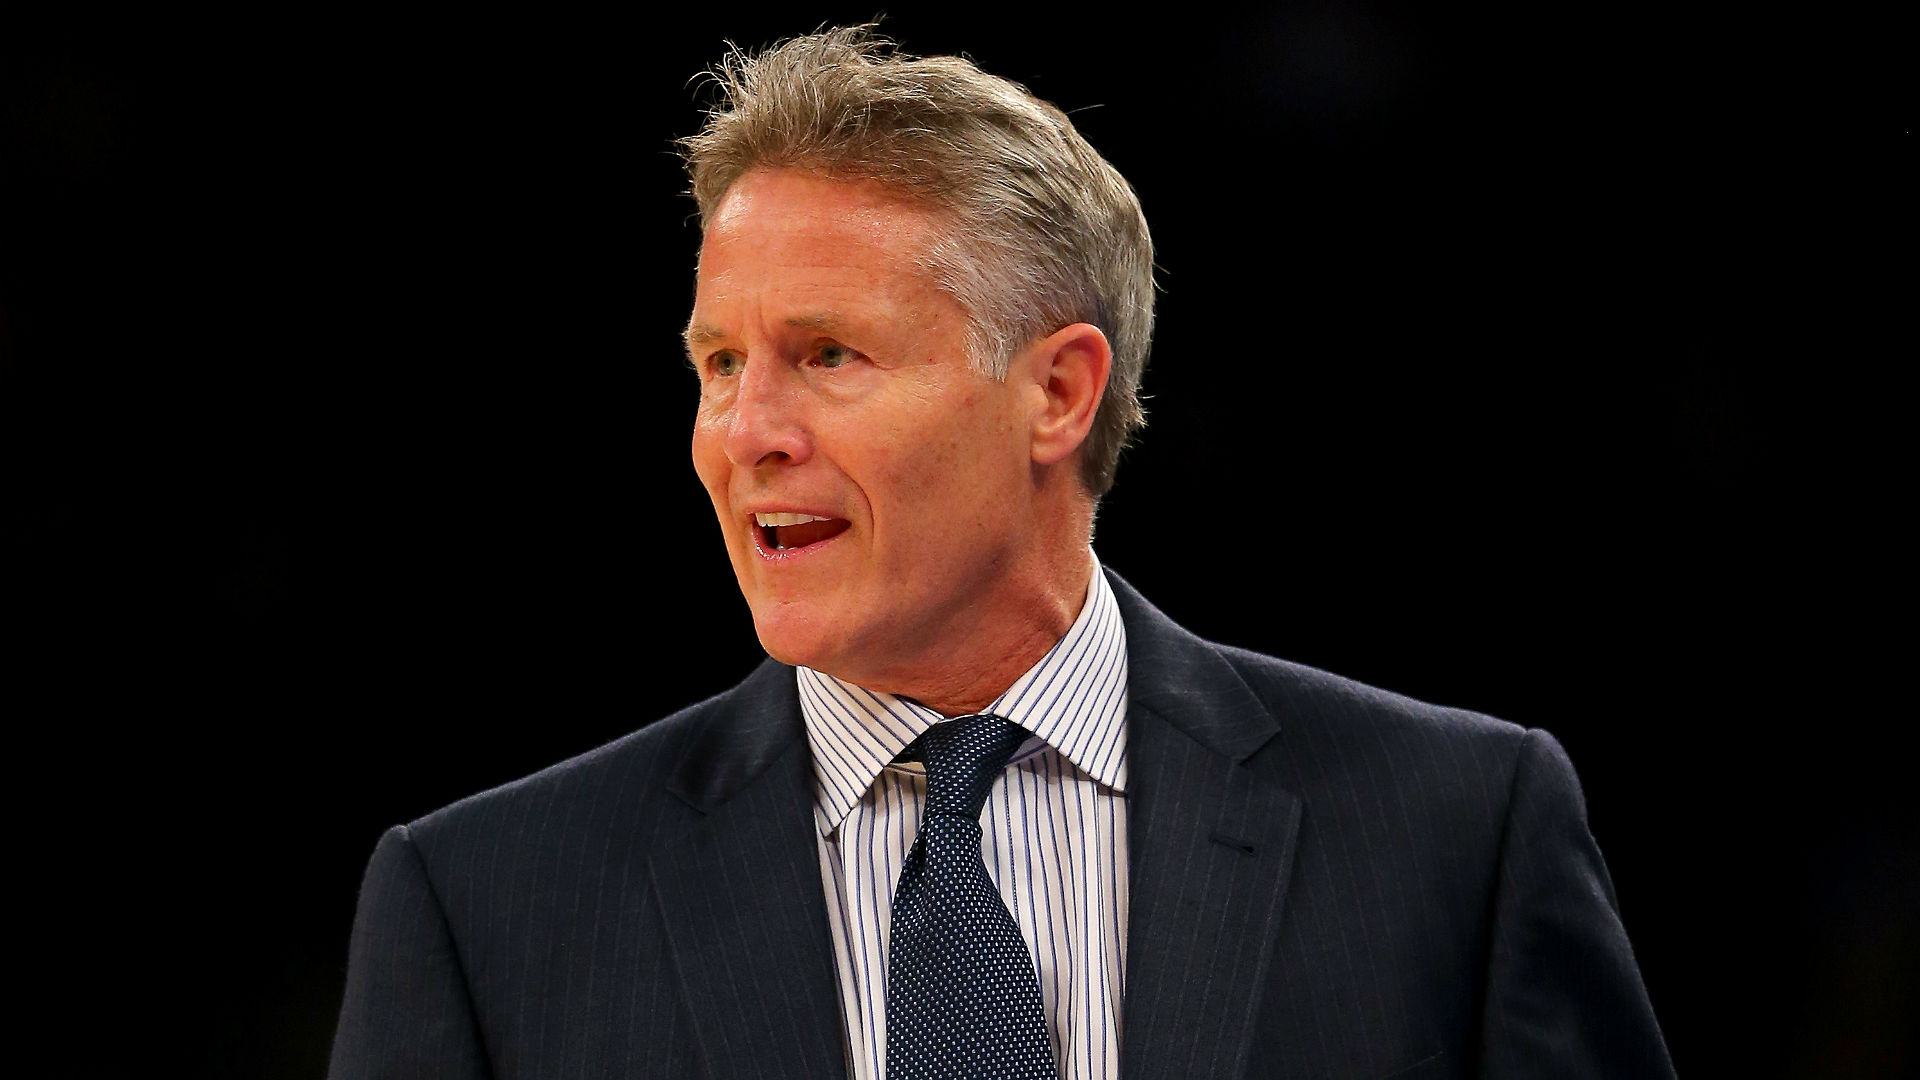 Brett Brown says 76ers 'need help' to win NBA championship